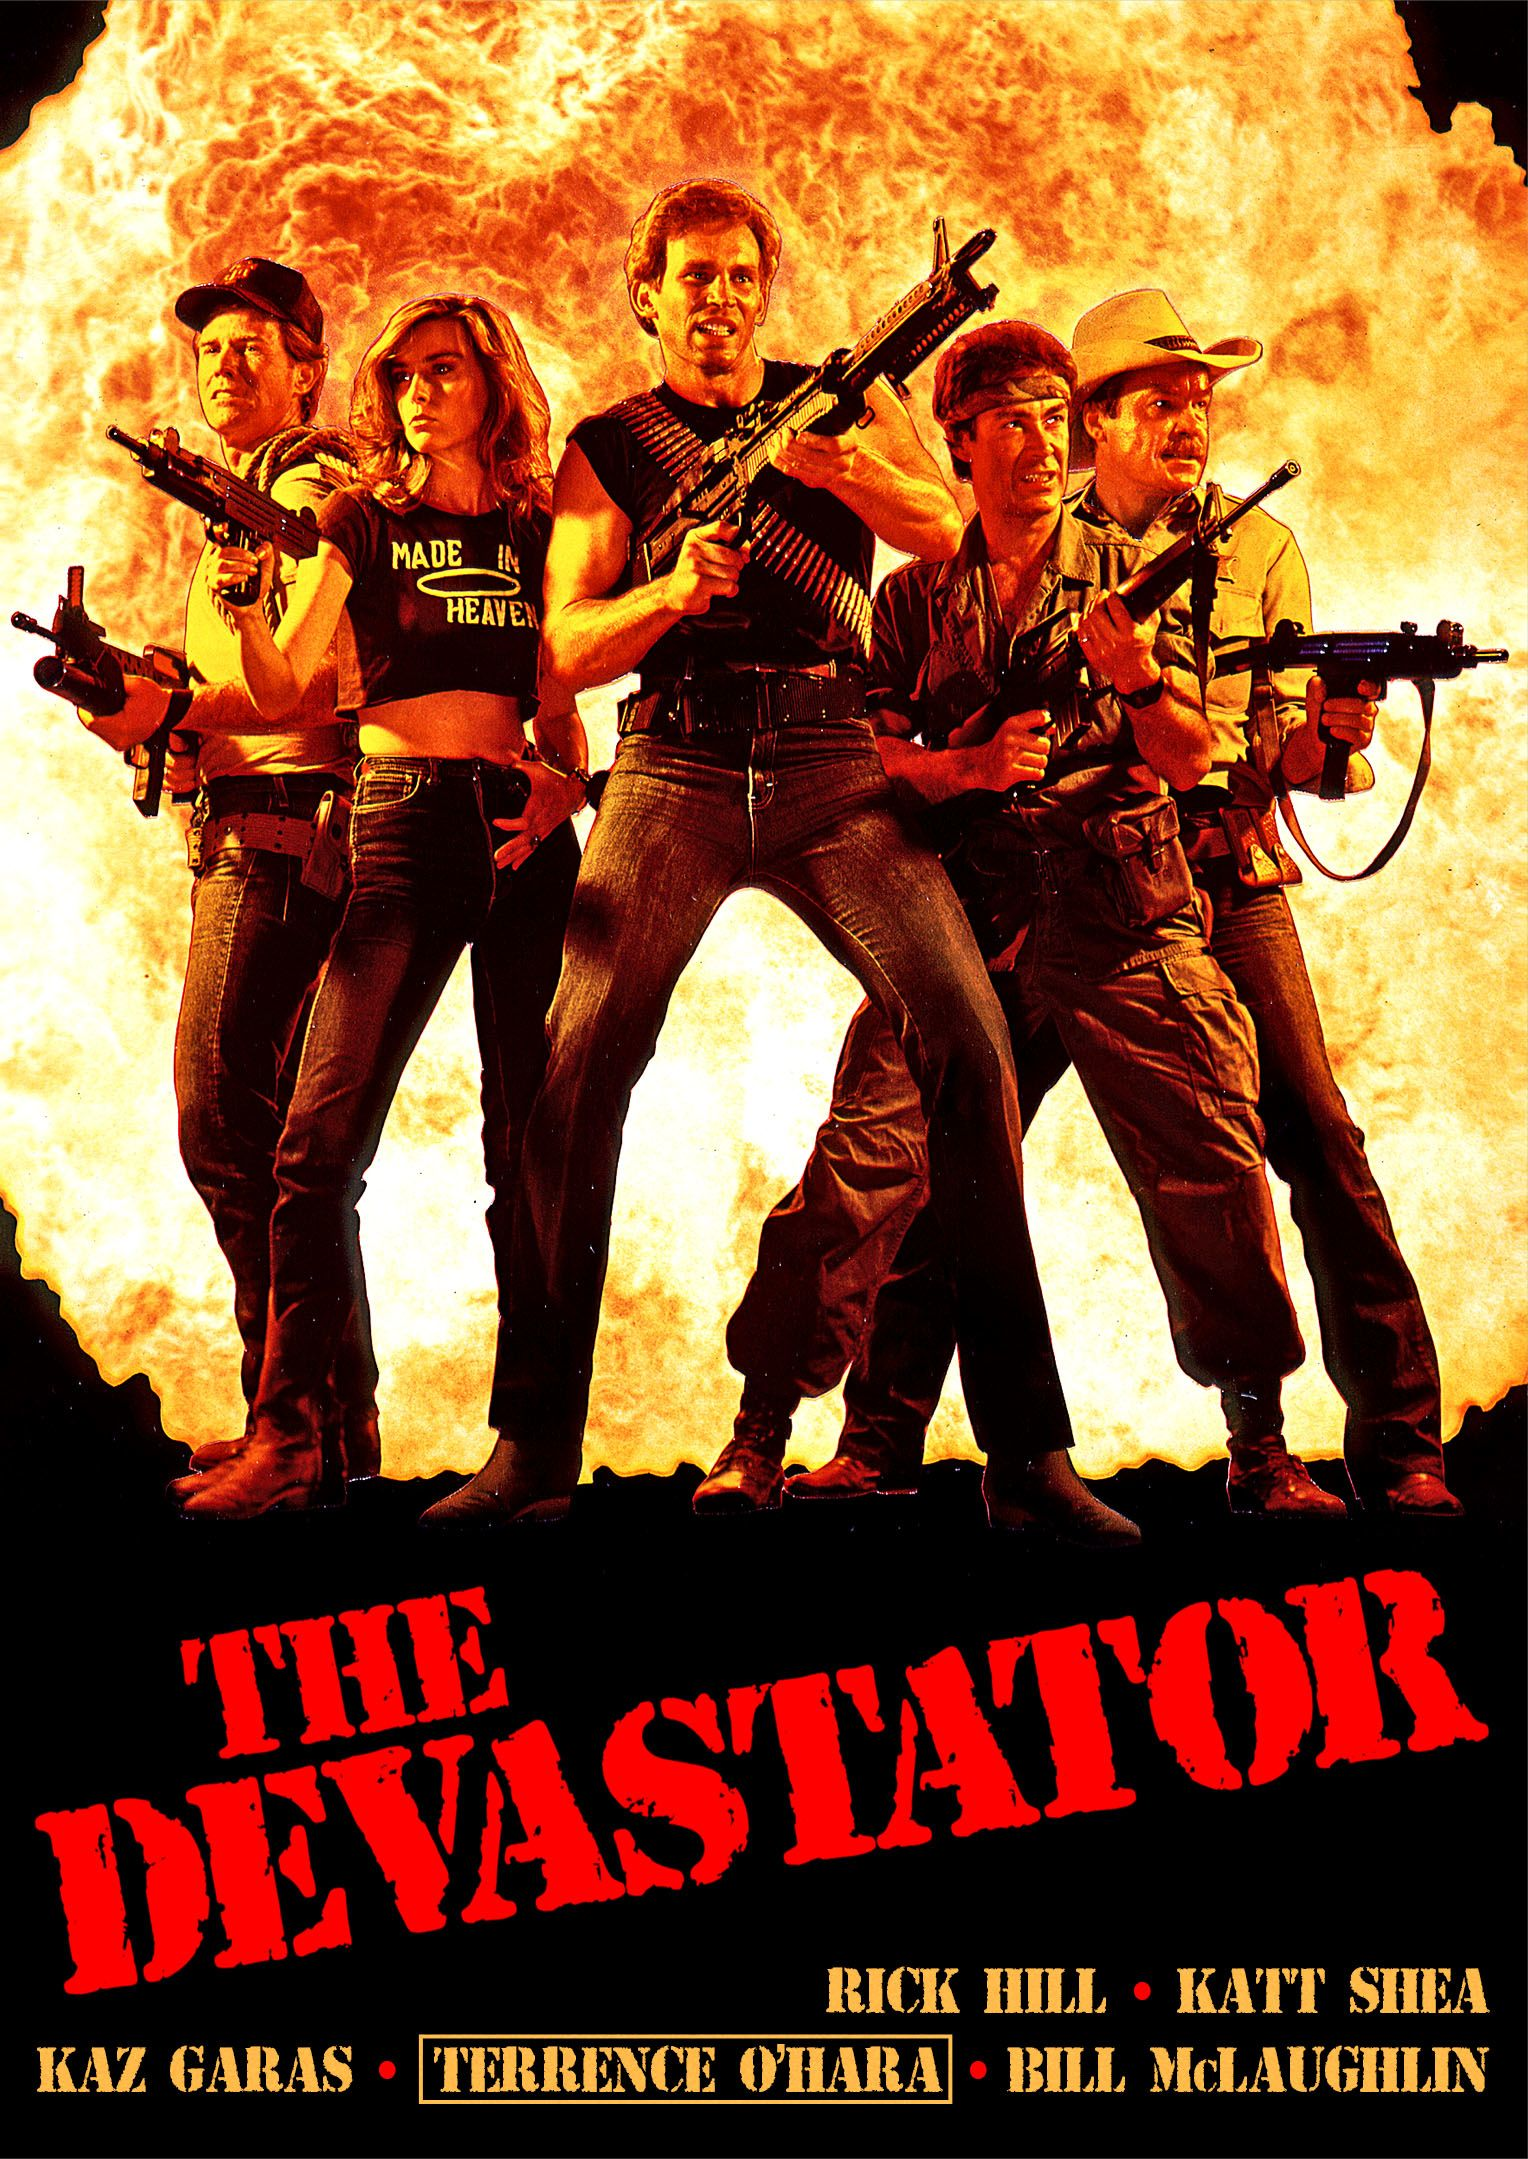 The Devastator